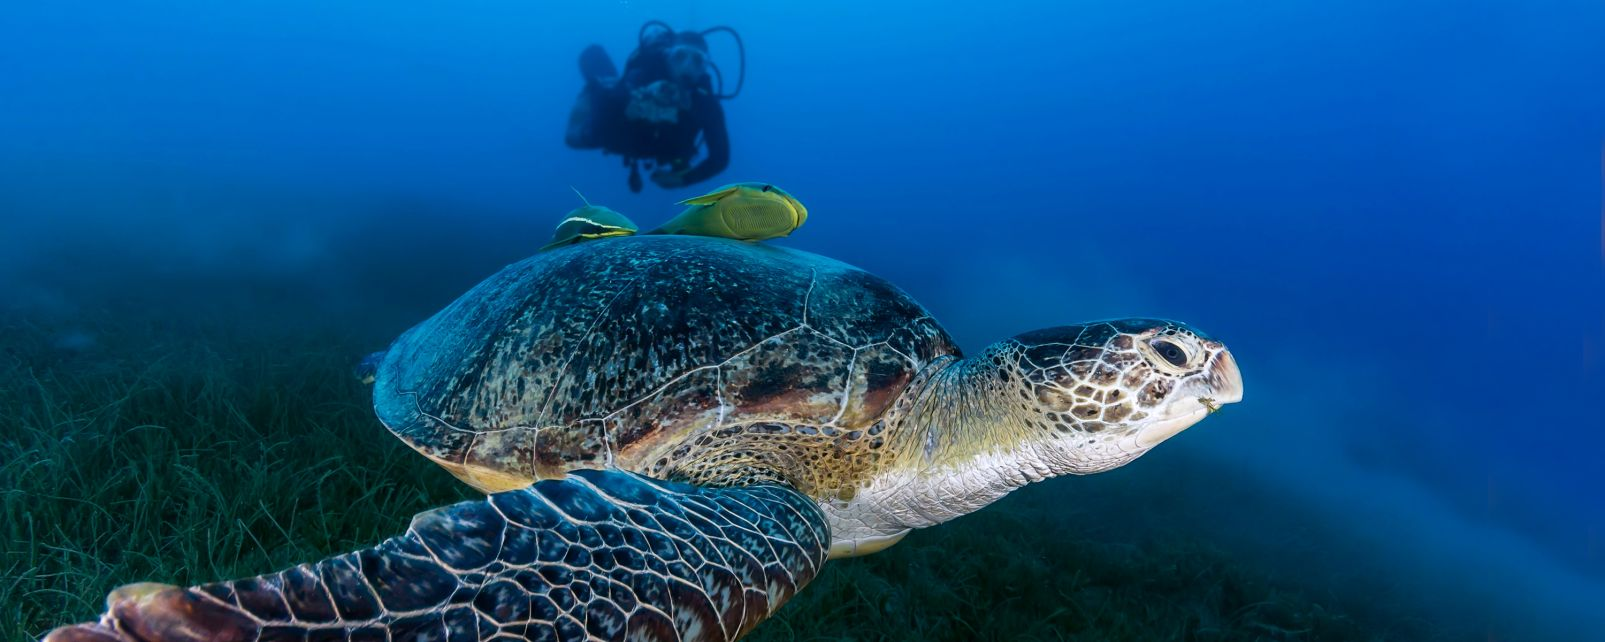 The best diving sites, A safari in Agusan Marsh, The fauna and flora, Philippines